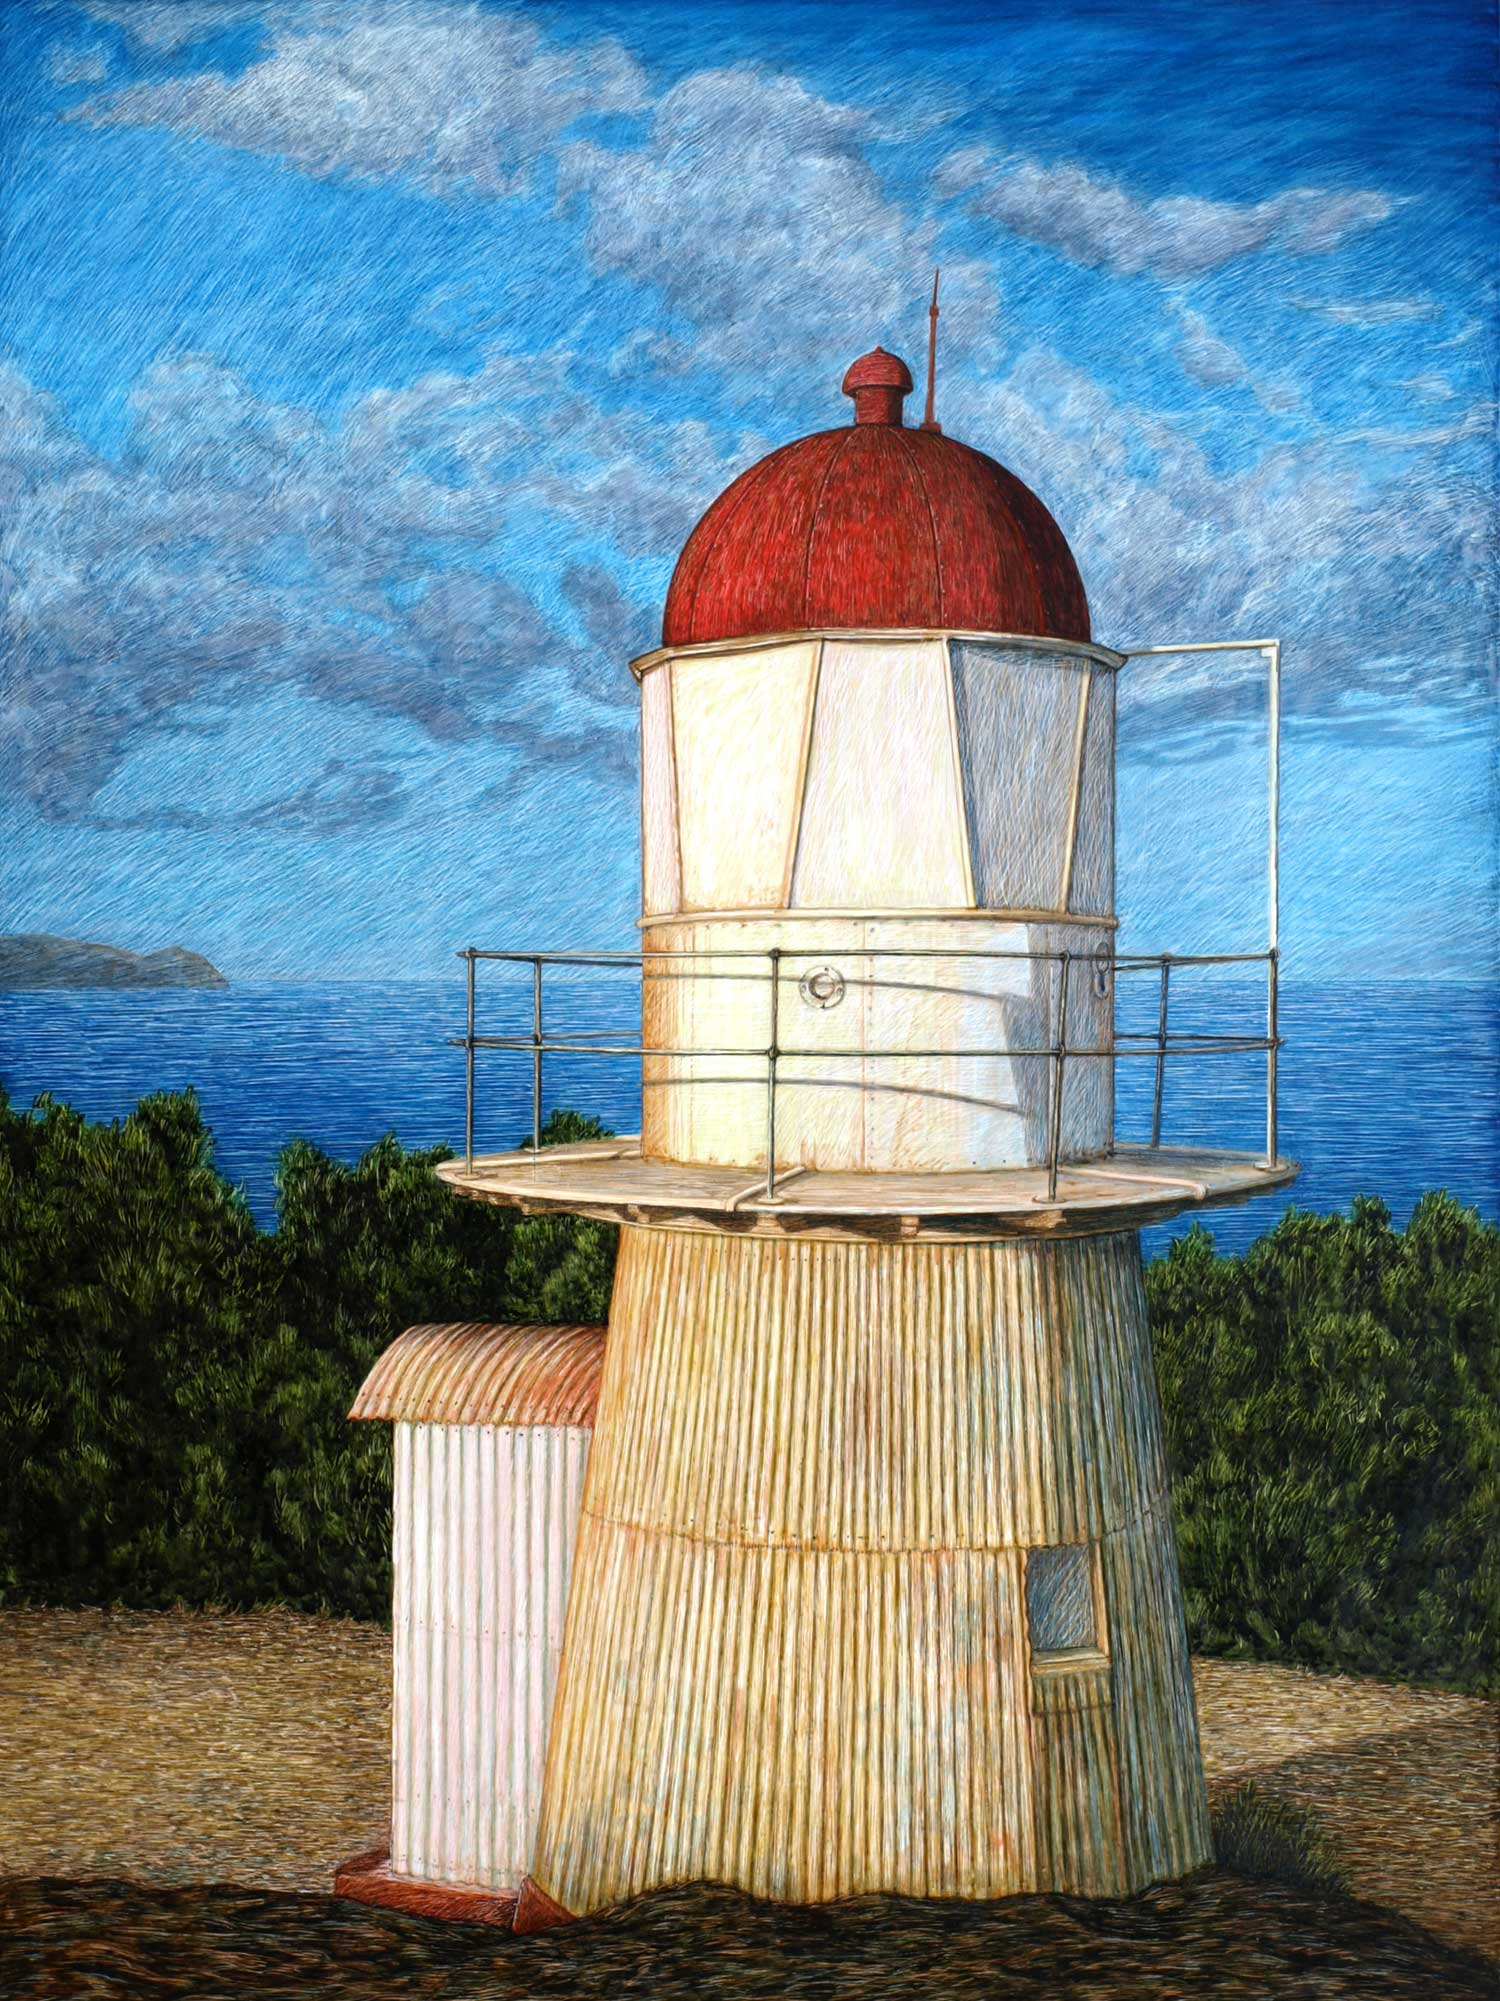 COOKTOWN LIGHTHOUSE  61 X 45.5 CM,  EDITION OF 50  PIGMENT ON COTTON RAG PAPER  $1,100 Also available 75 x 56 cm $1,350